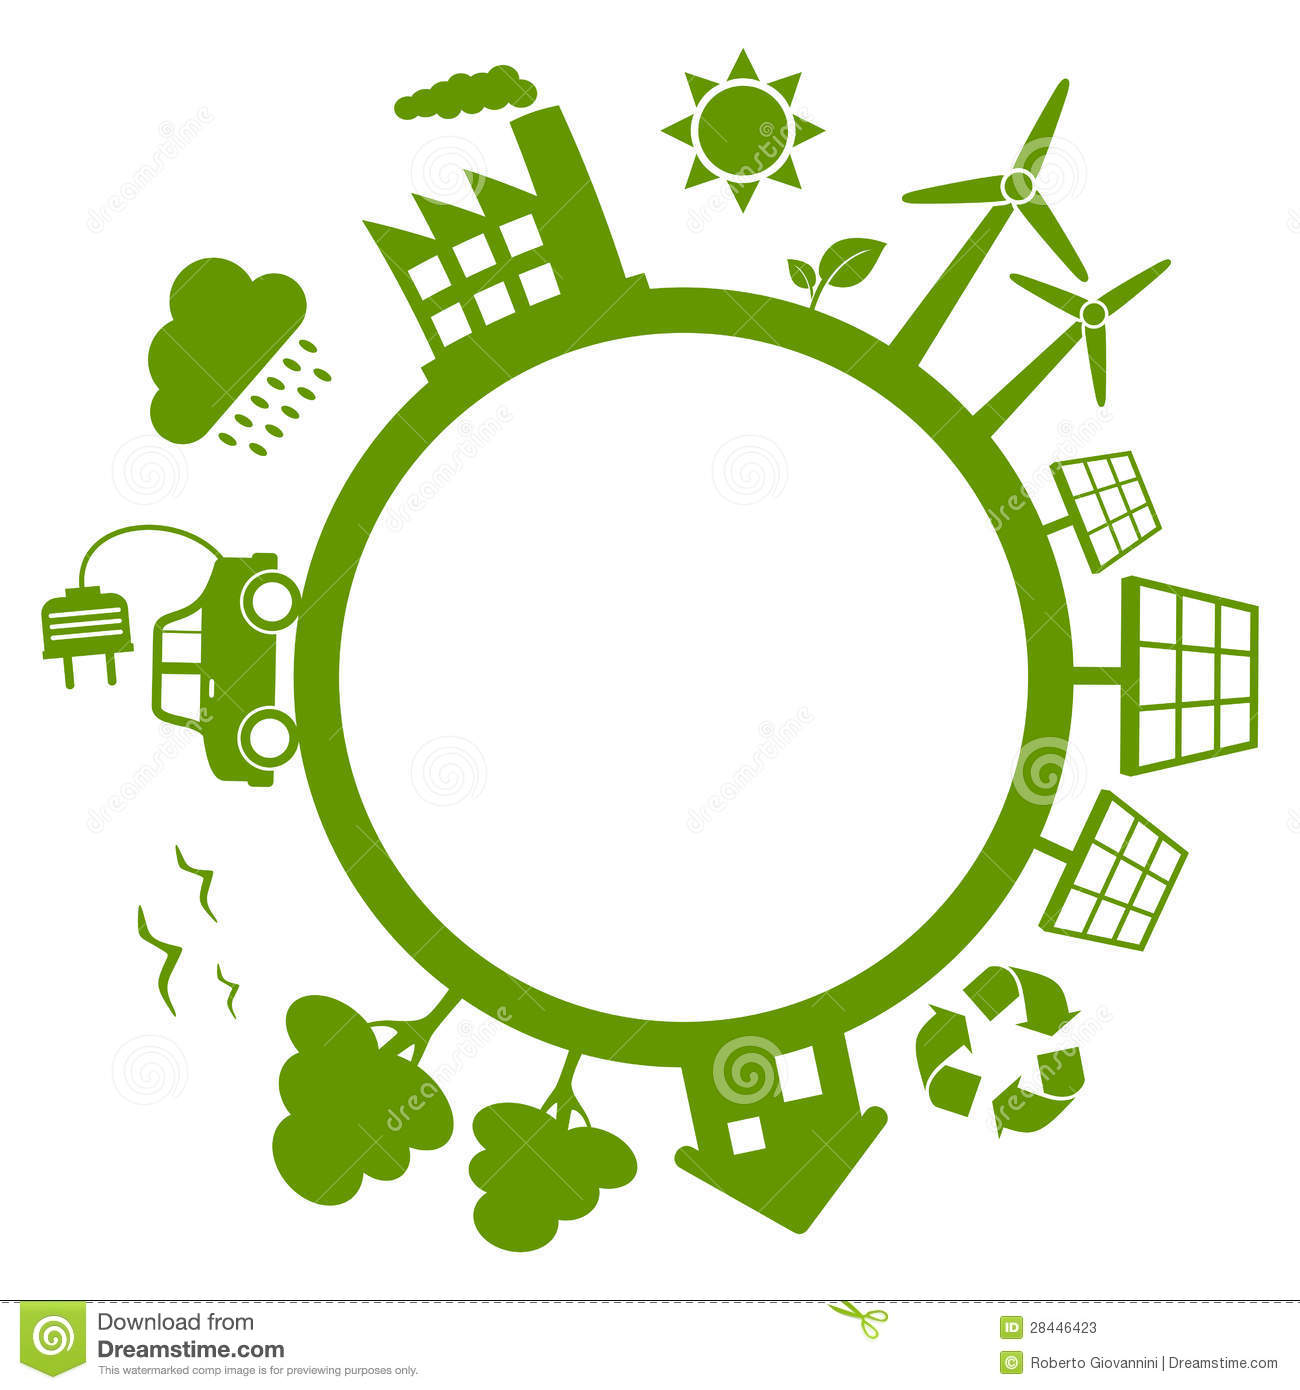 Green energy planet earth concept with wind turbines, solar panels ...